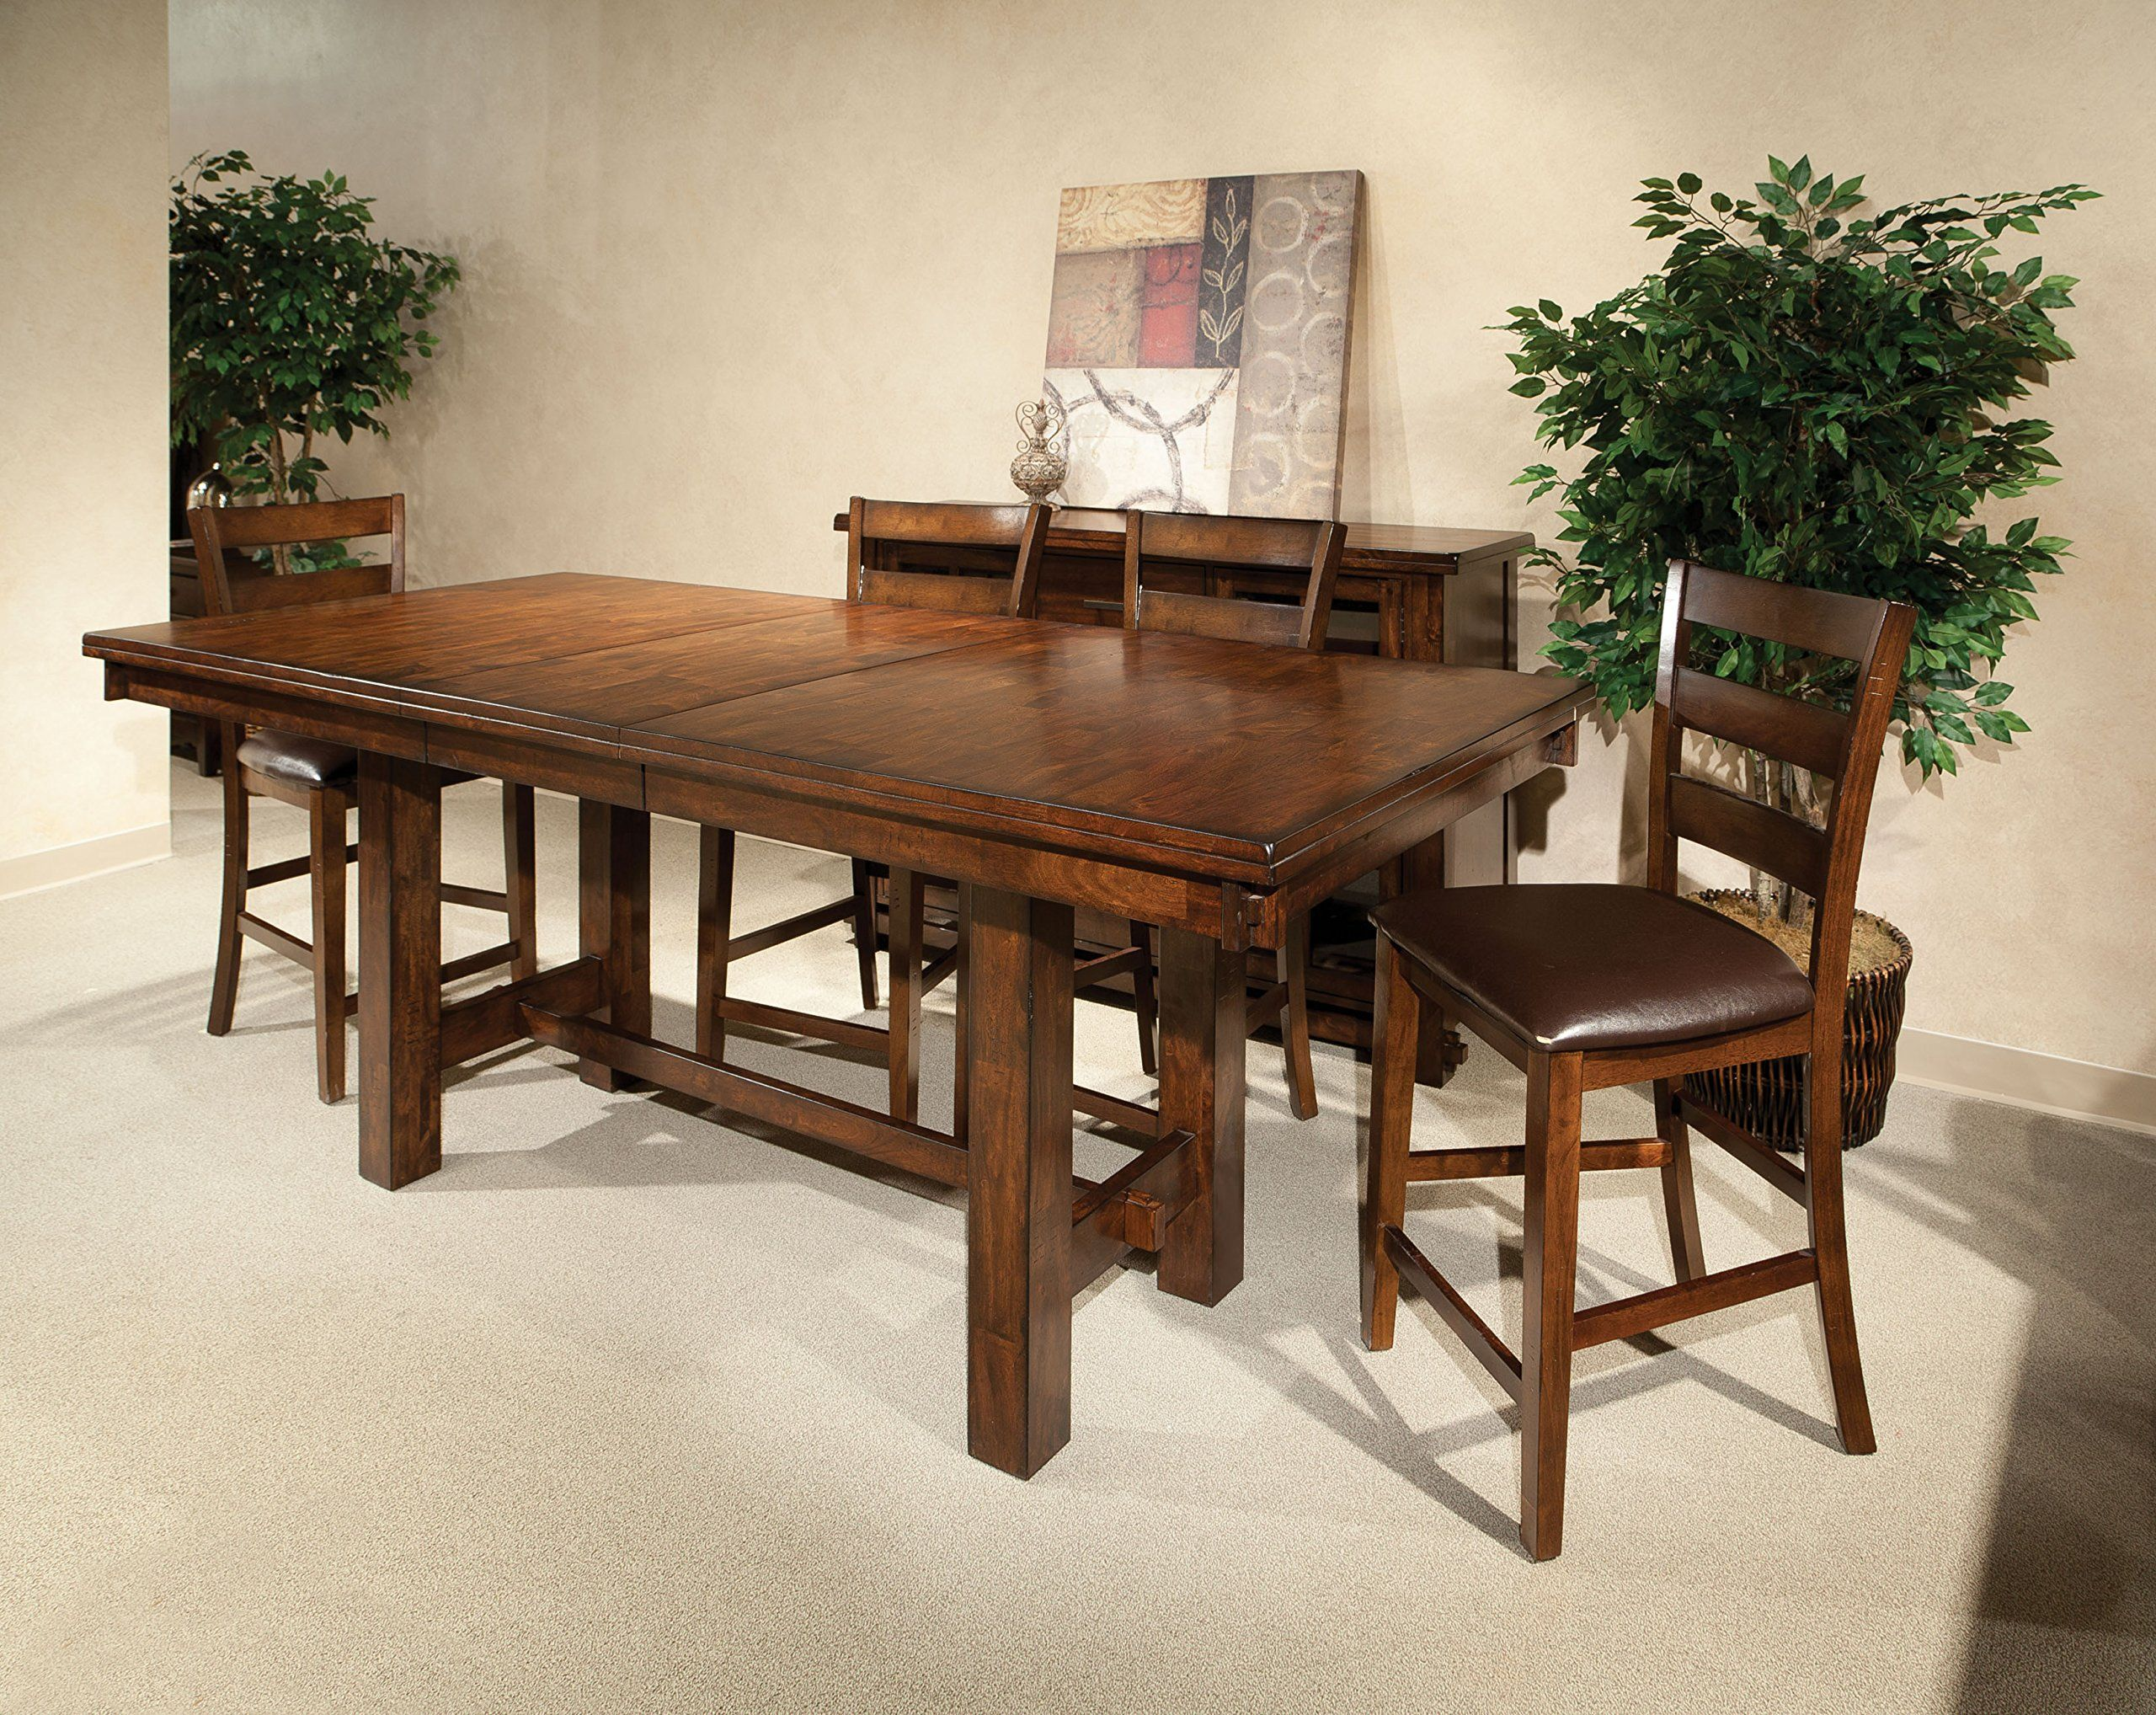 Incredible Intercon Kona Mango Wood 7 Pc Trestle Gathering Set Gmtry Best Dining Table And Chair Ideas Images Gmtryco